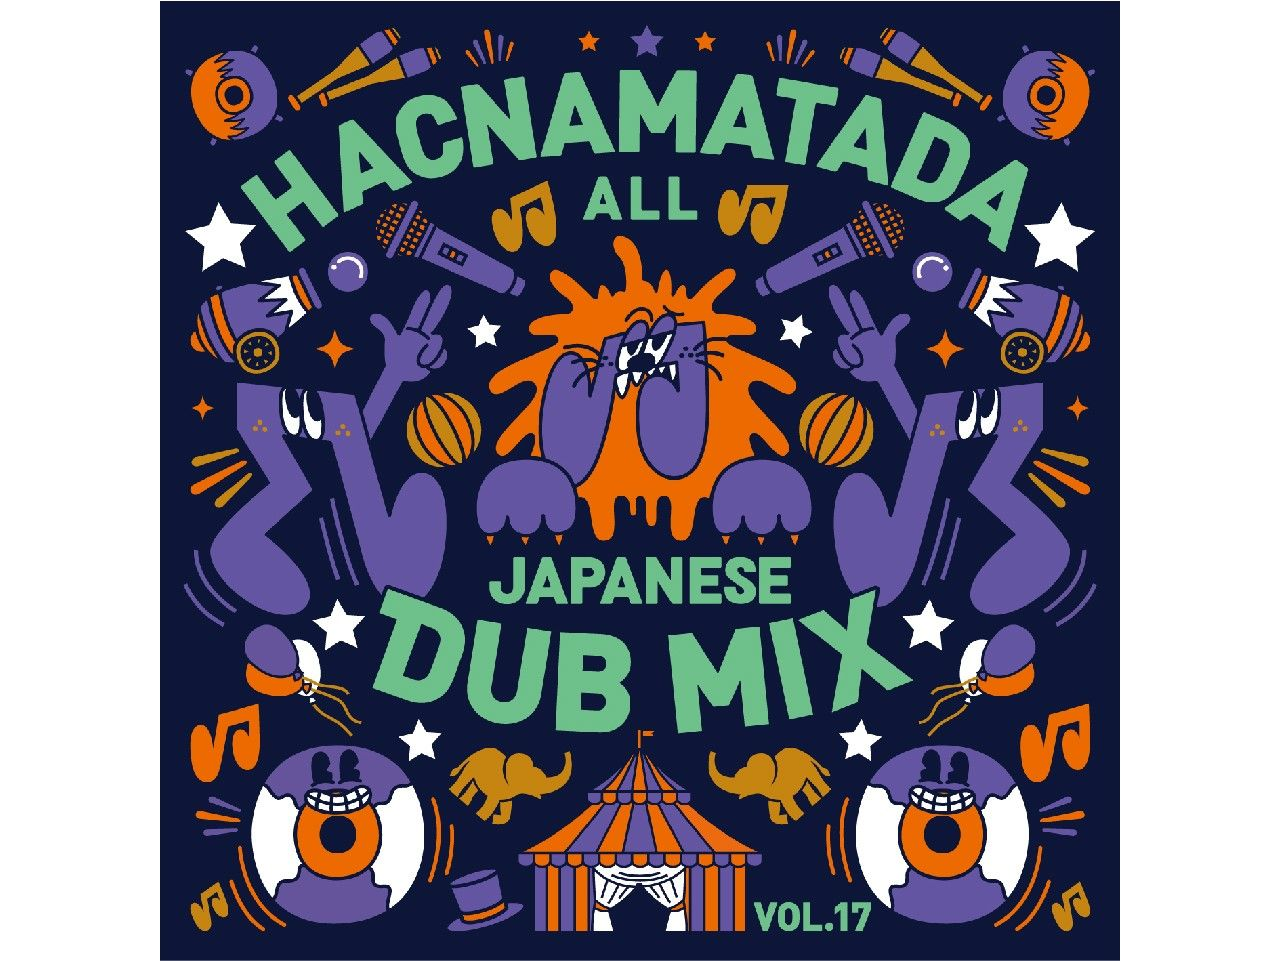 HACNAMATADA ALL JAPANESE DUB MIX VOL:17 - HACNAMATADA